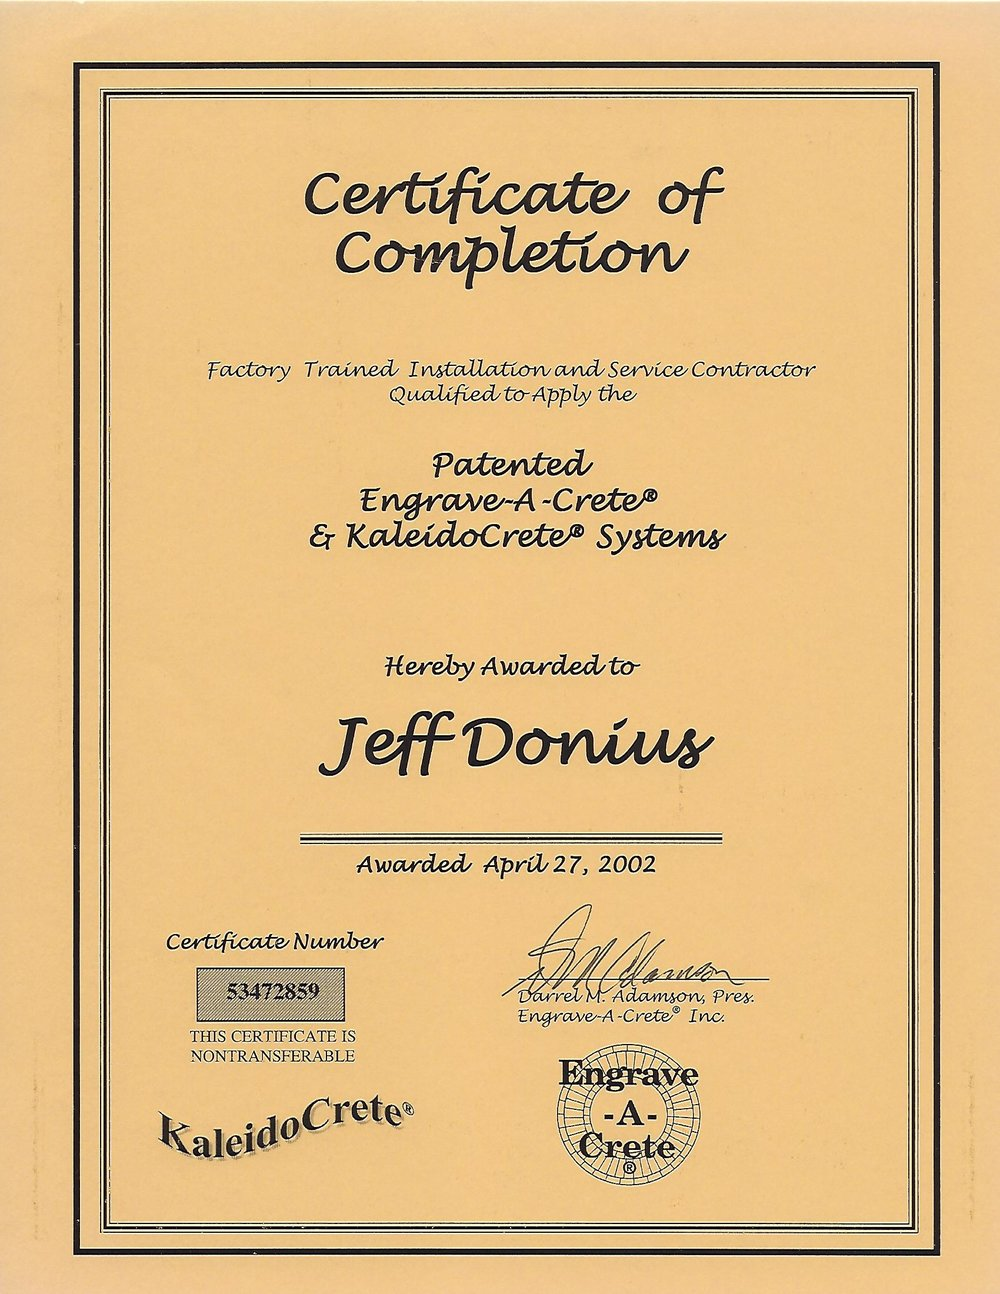 Certificate of Completion in Concrete Engraving From Engrave-A-Crete